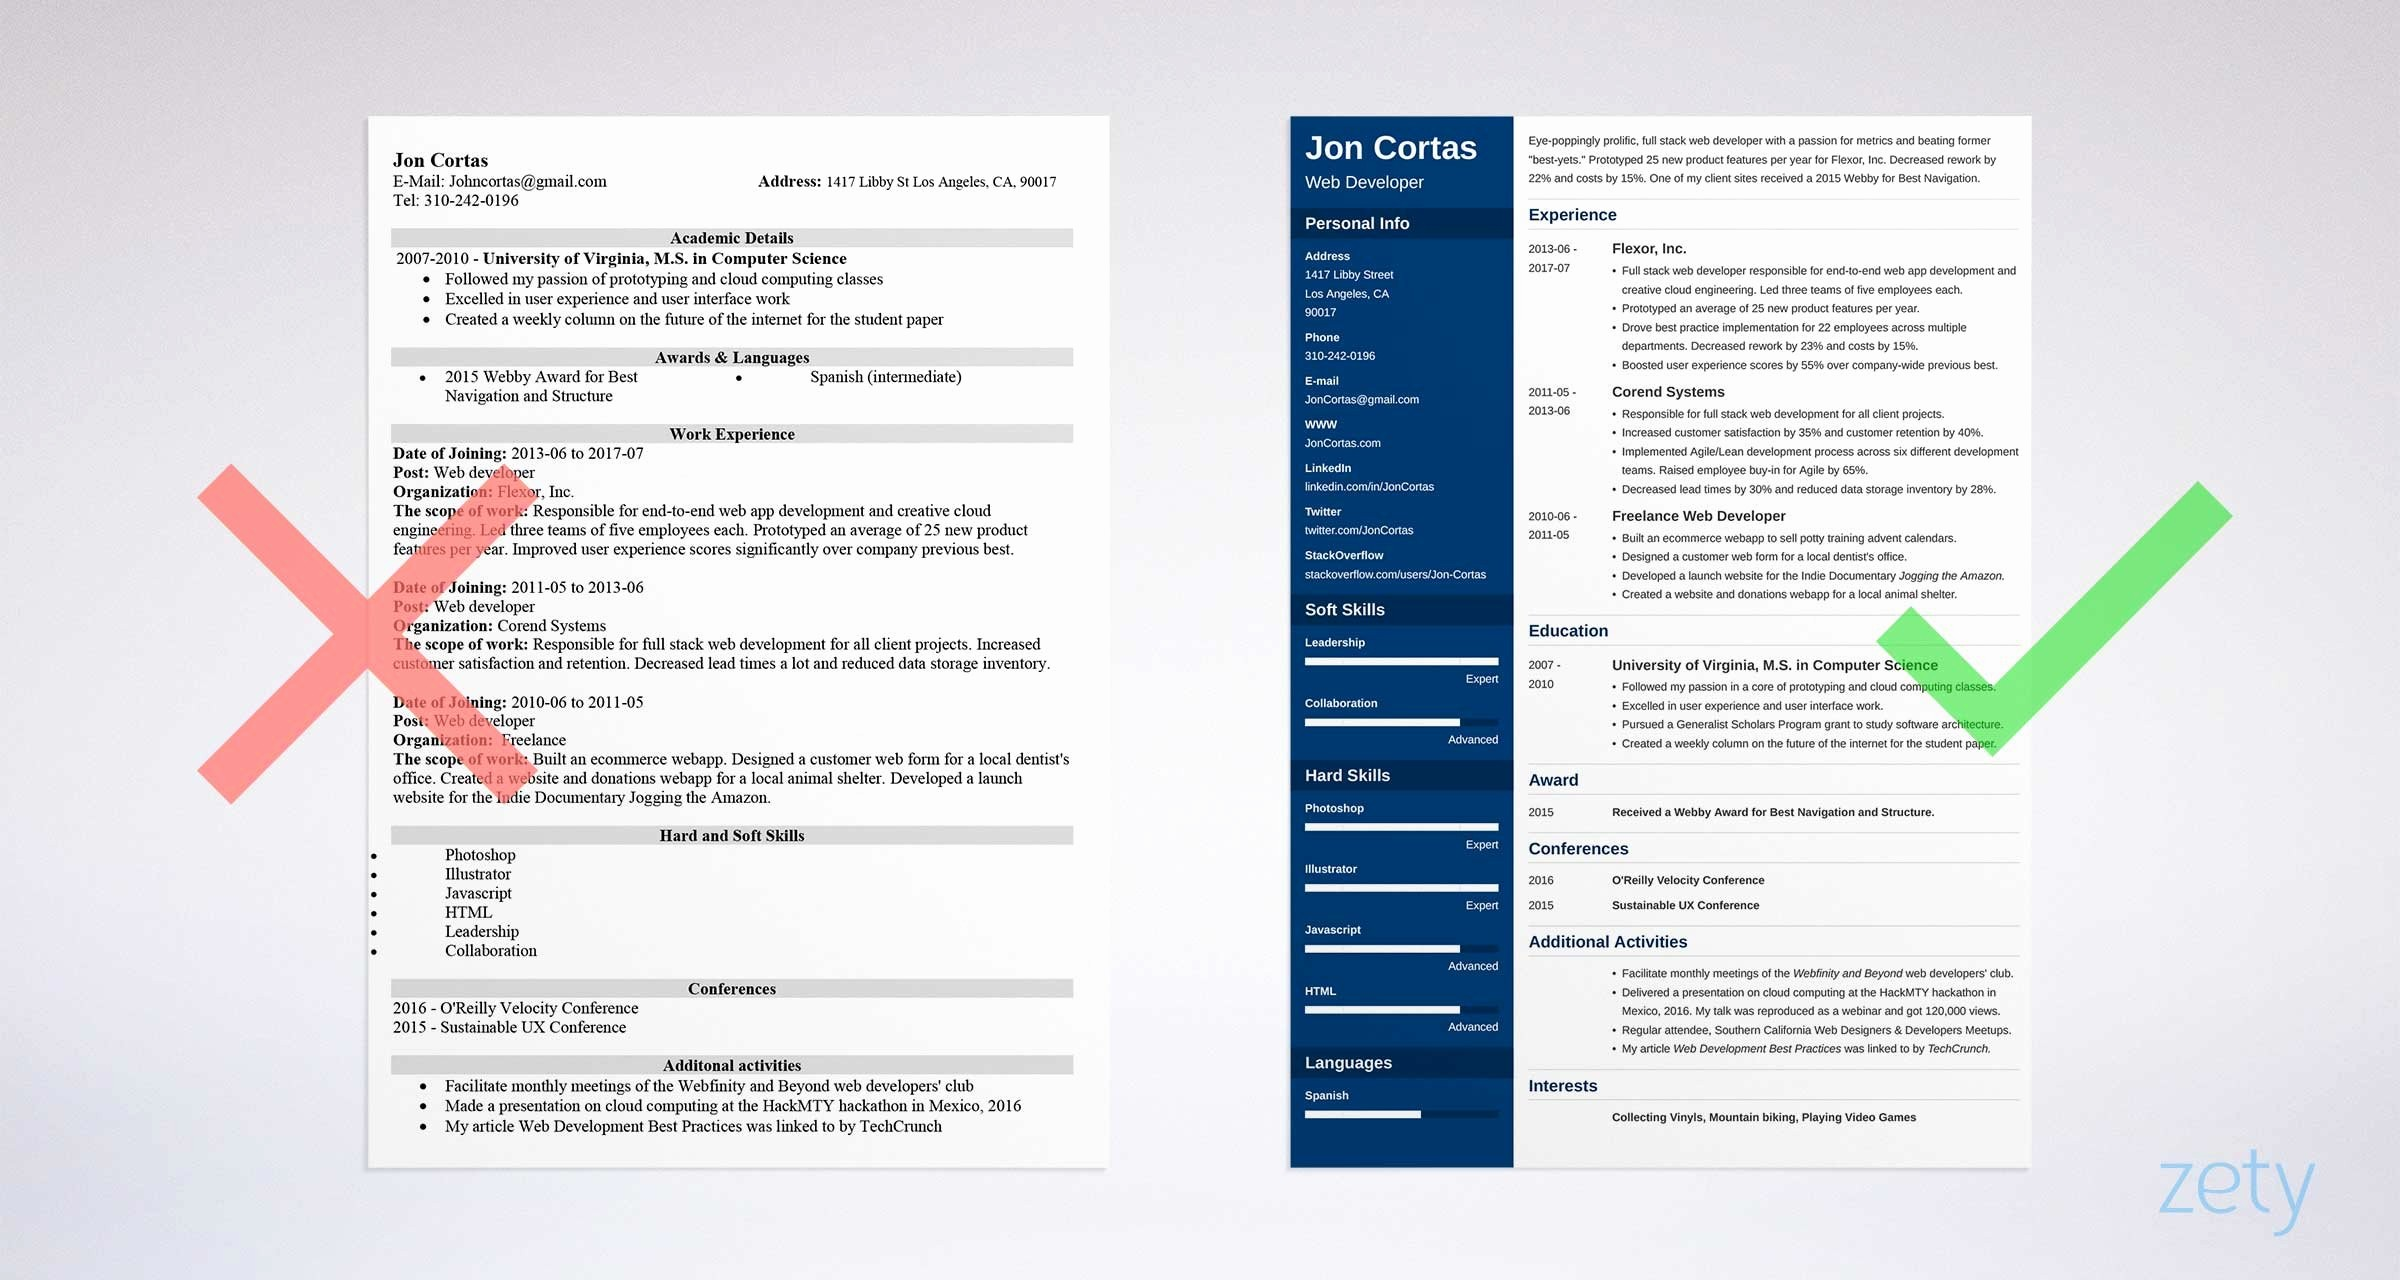 Ms Word Templates for Resumes Luxury Free Resume Templates for Word 15 Cv Resume formats to